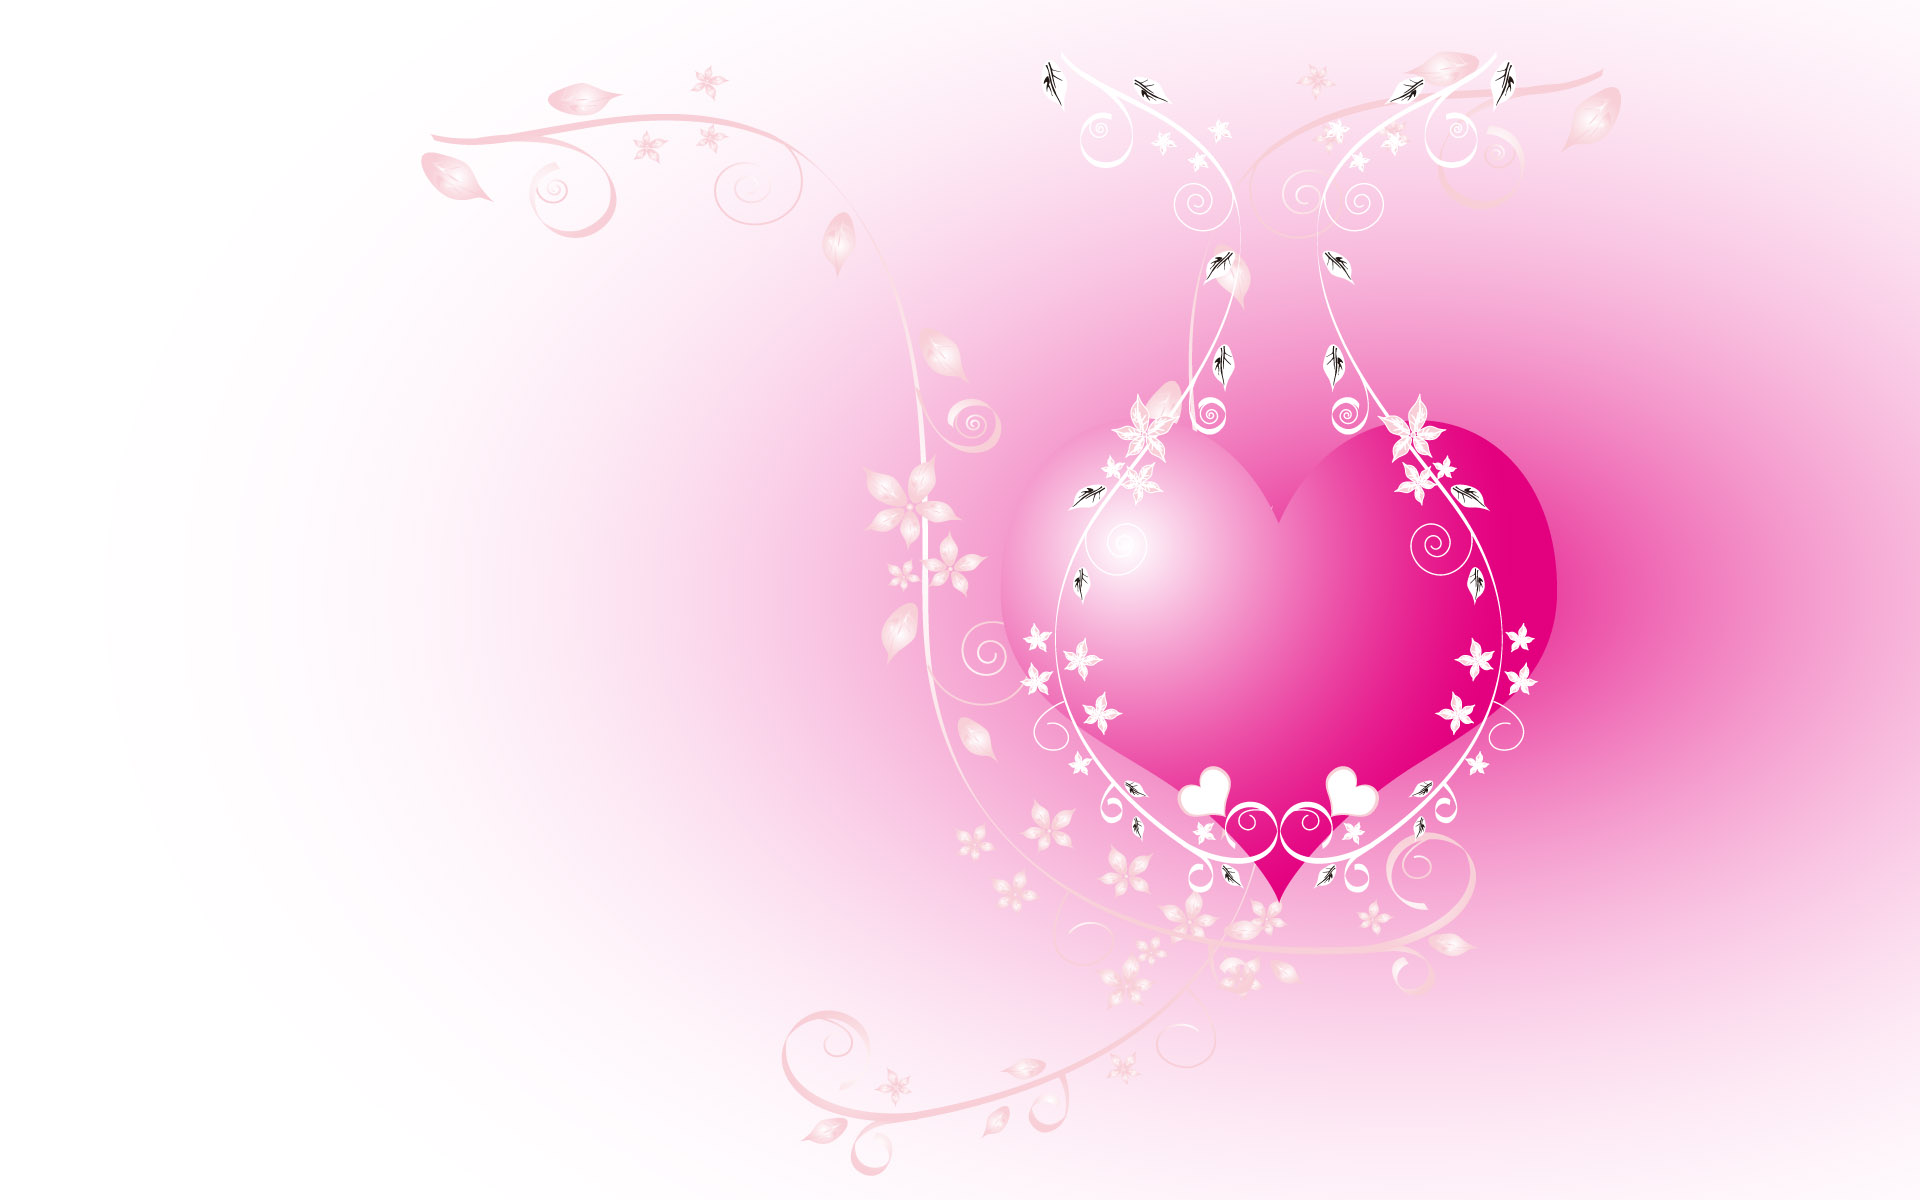 Download Hearts wallpaper the pink heart 1920x1200